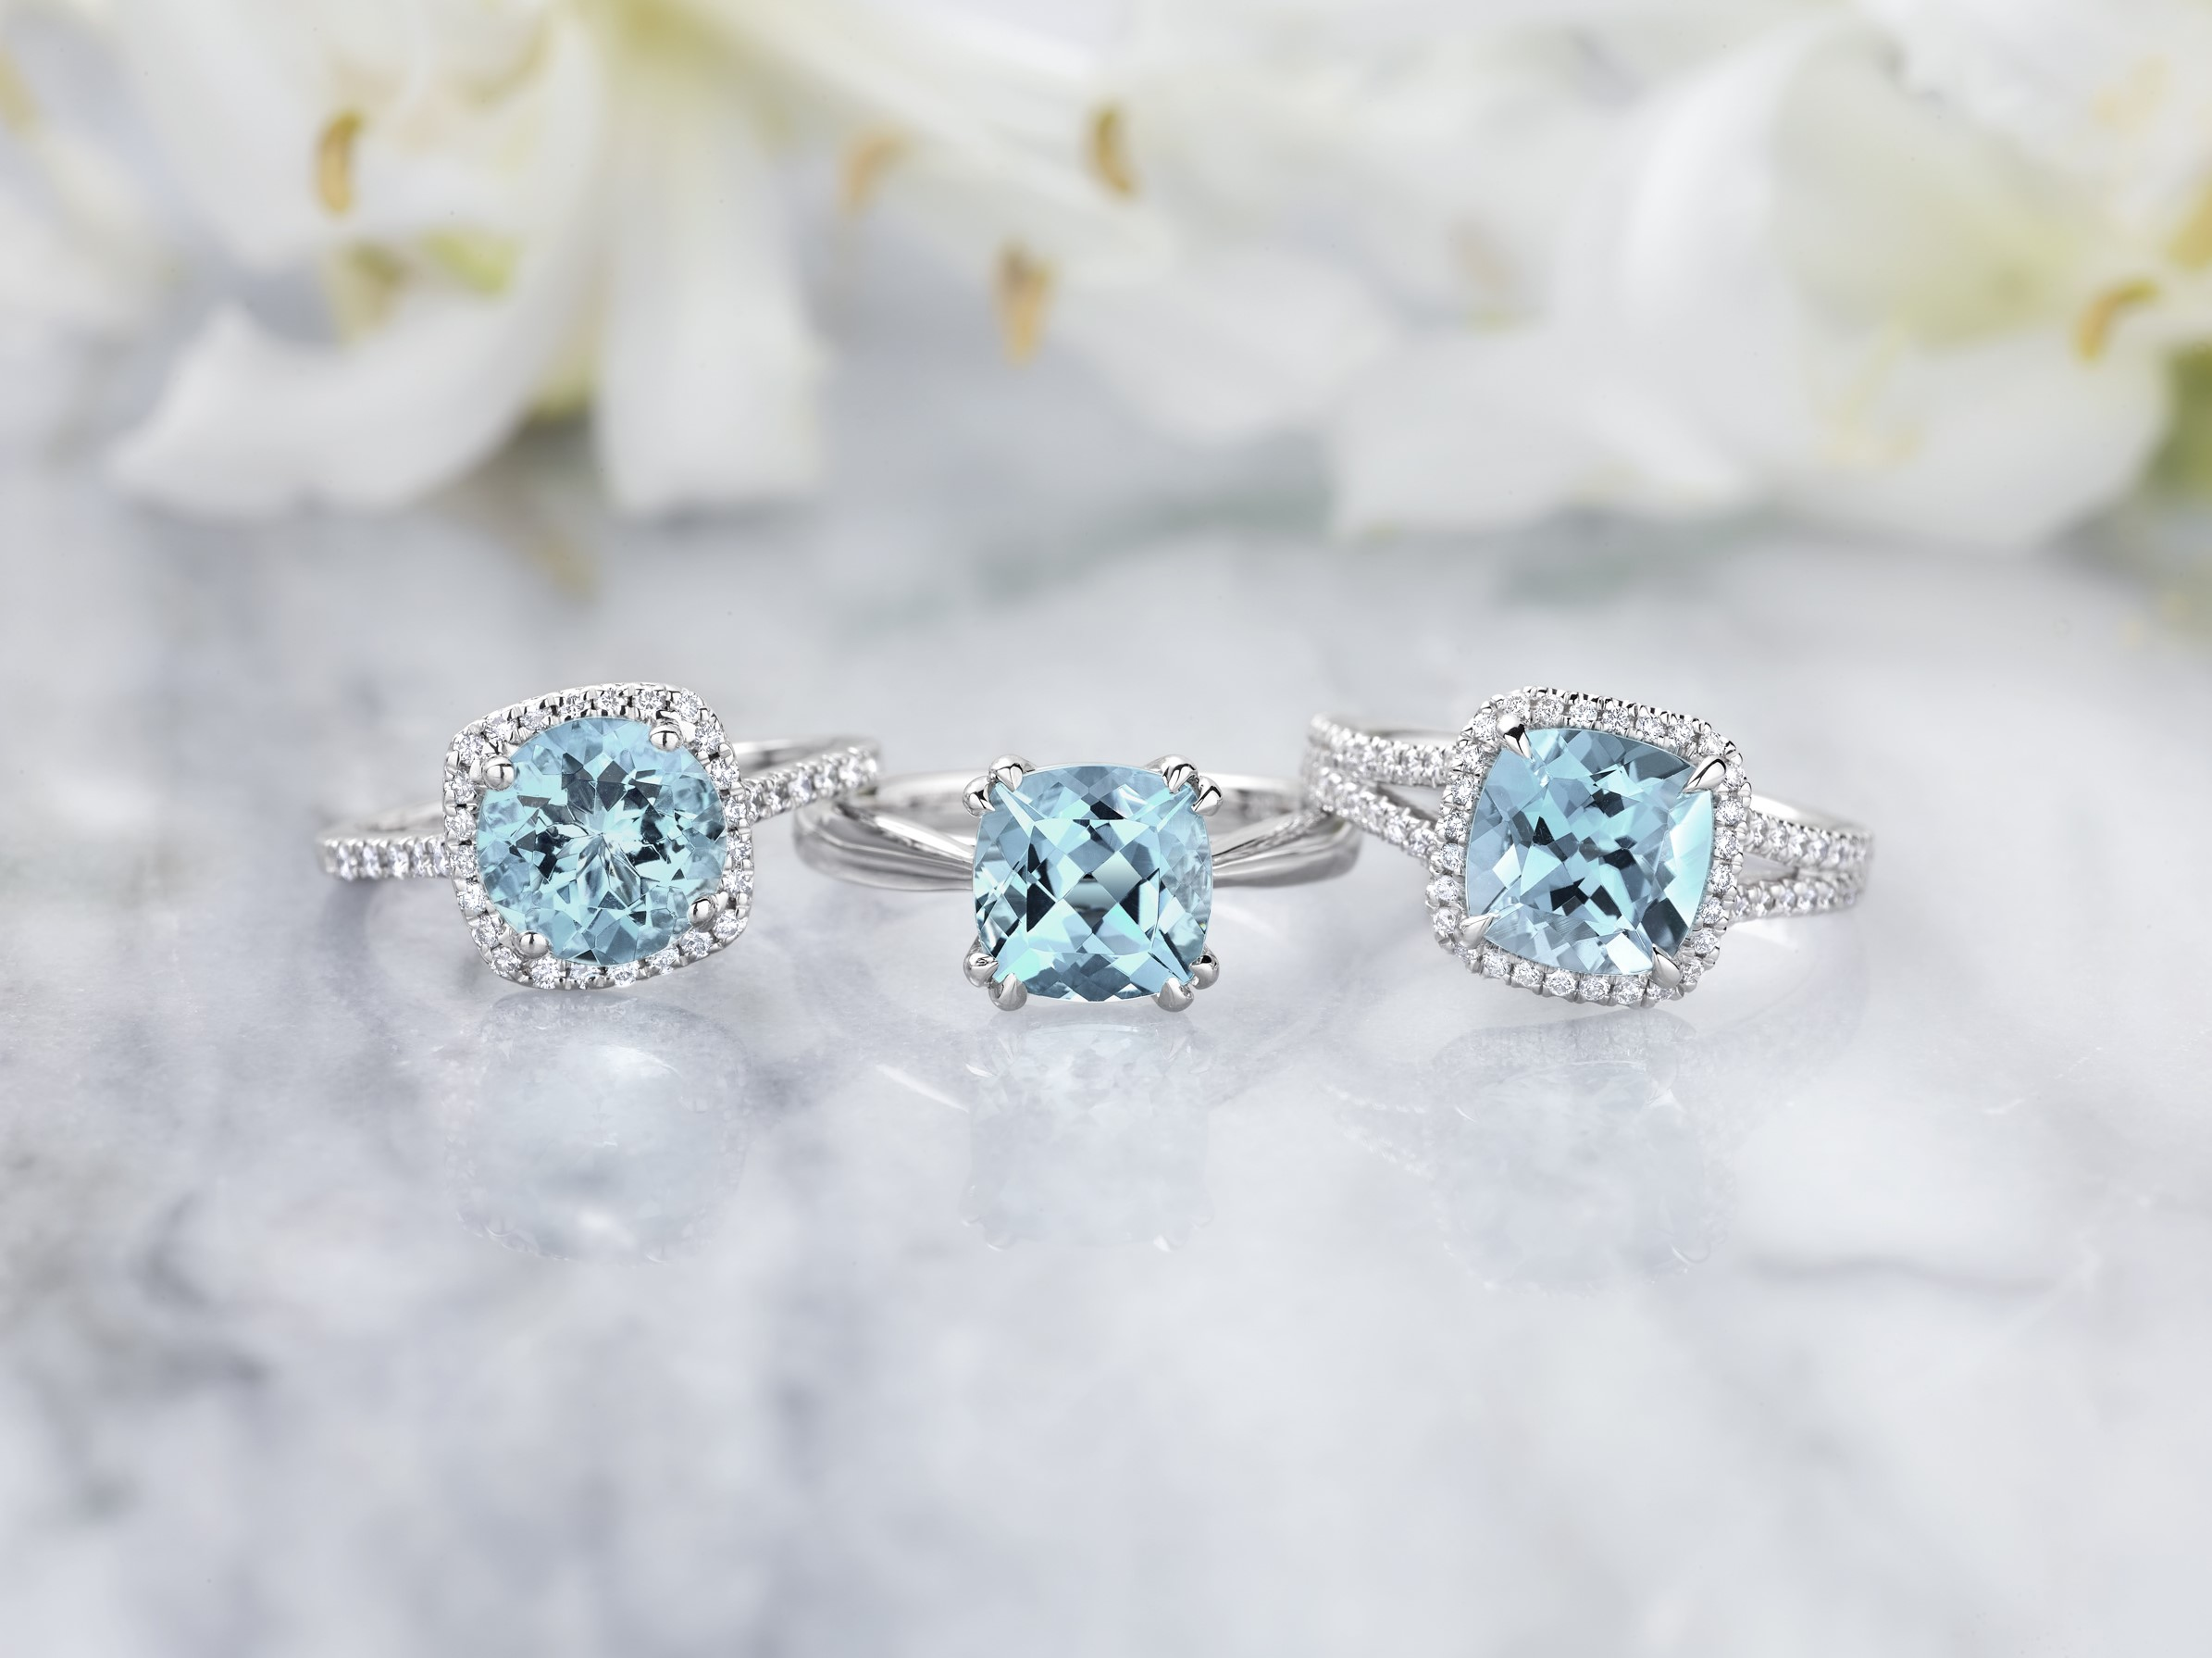 images best in diamond shared set halo engagement on of brilliant the gorgeous this rings a ring features josephjewelry organic pinterest floral surrounded prong by cut center diamonds round